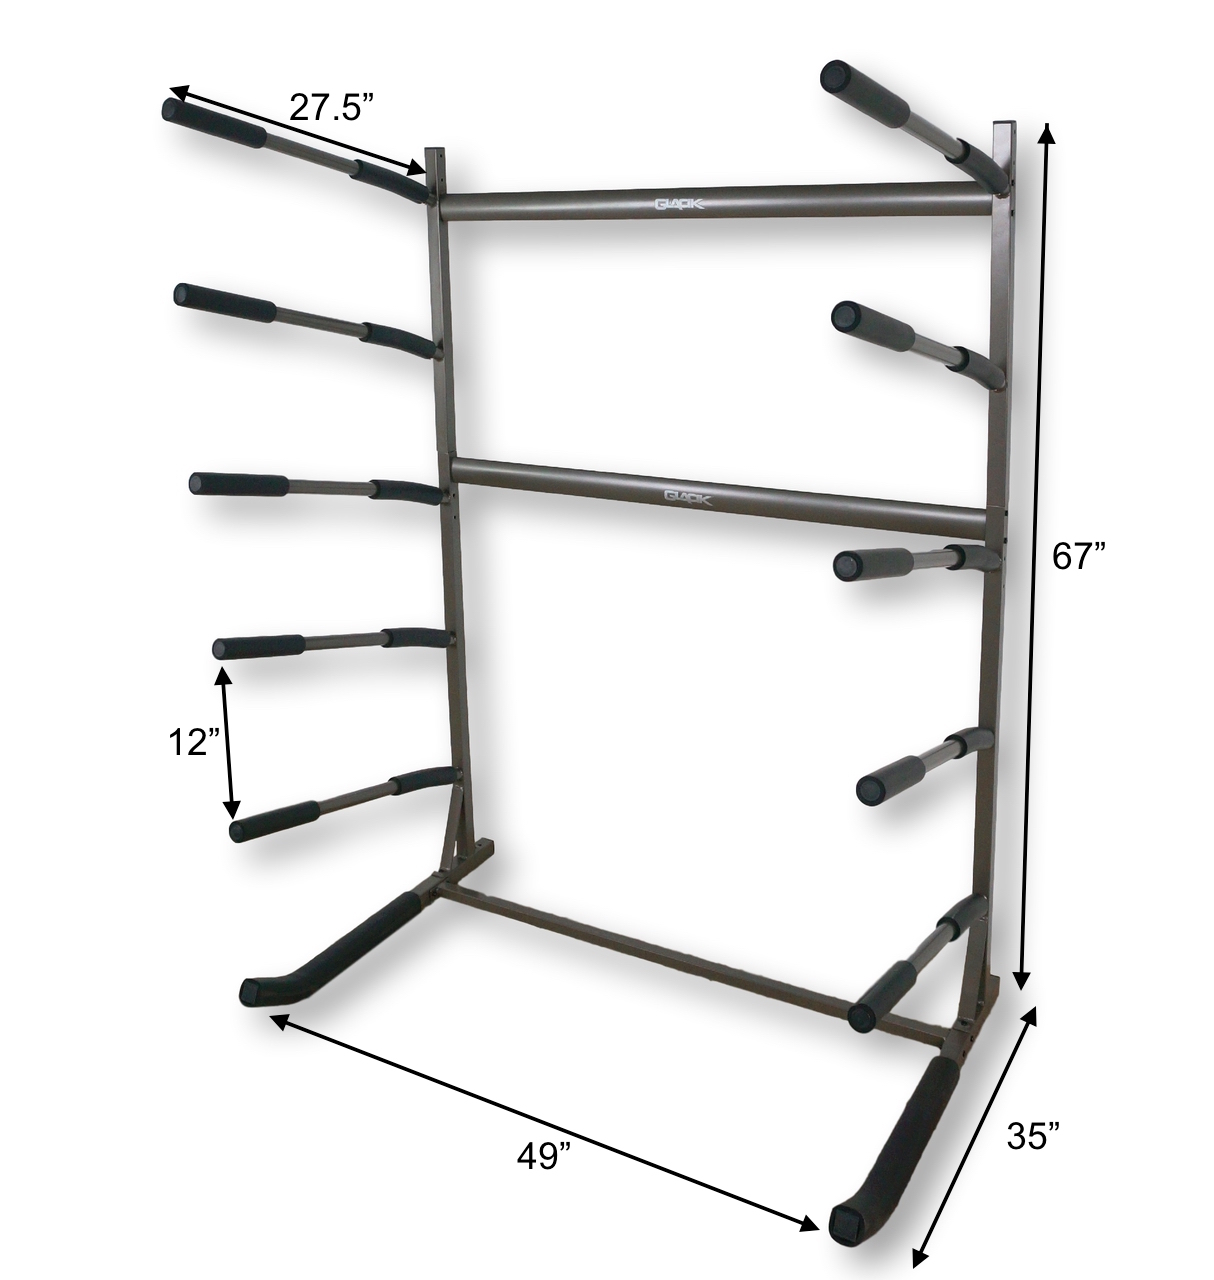 5-sup-floor-rack-dims.jpg